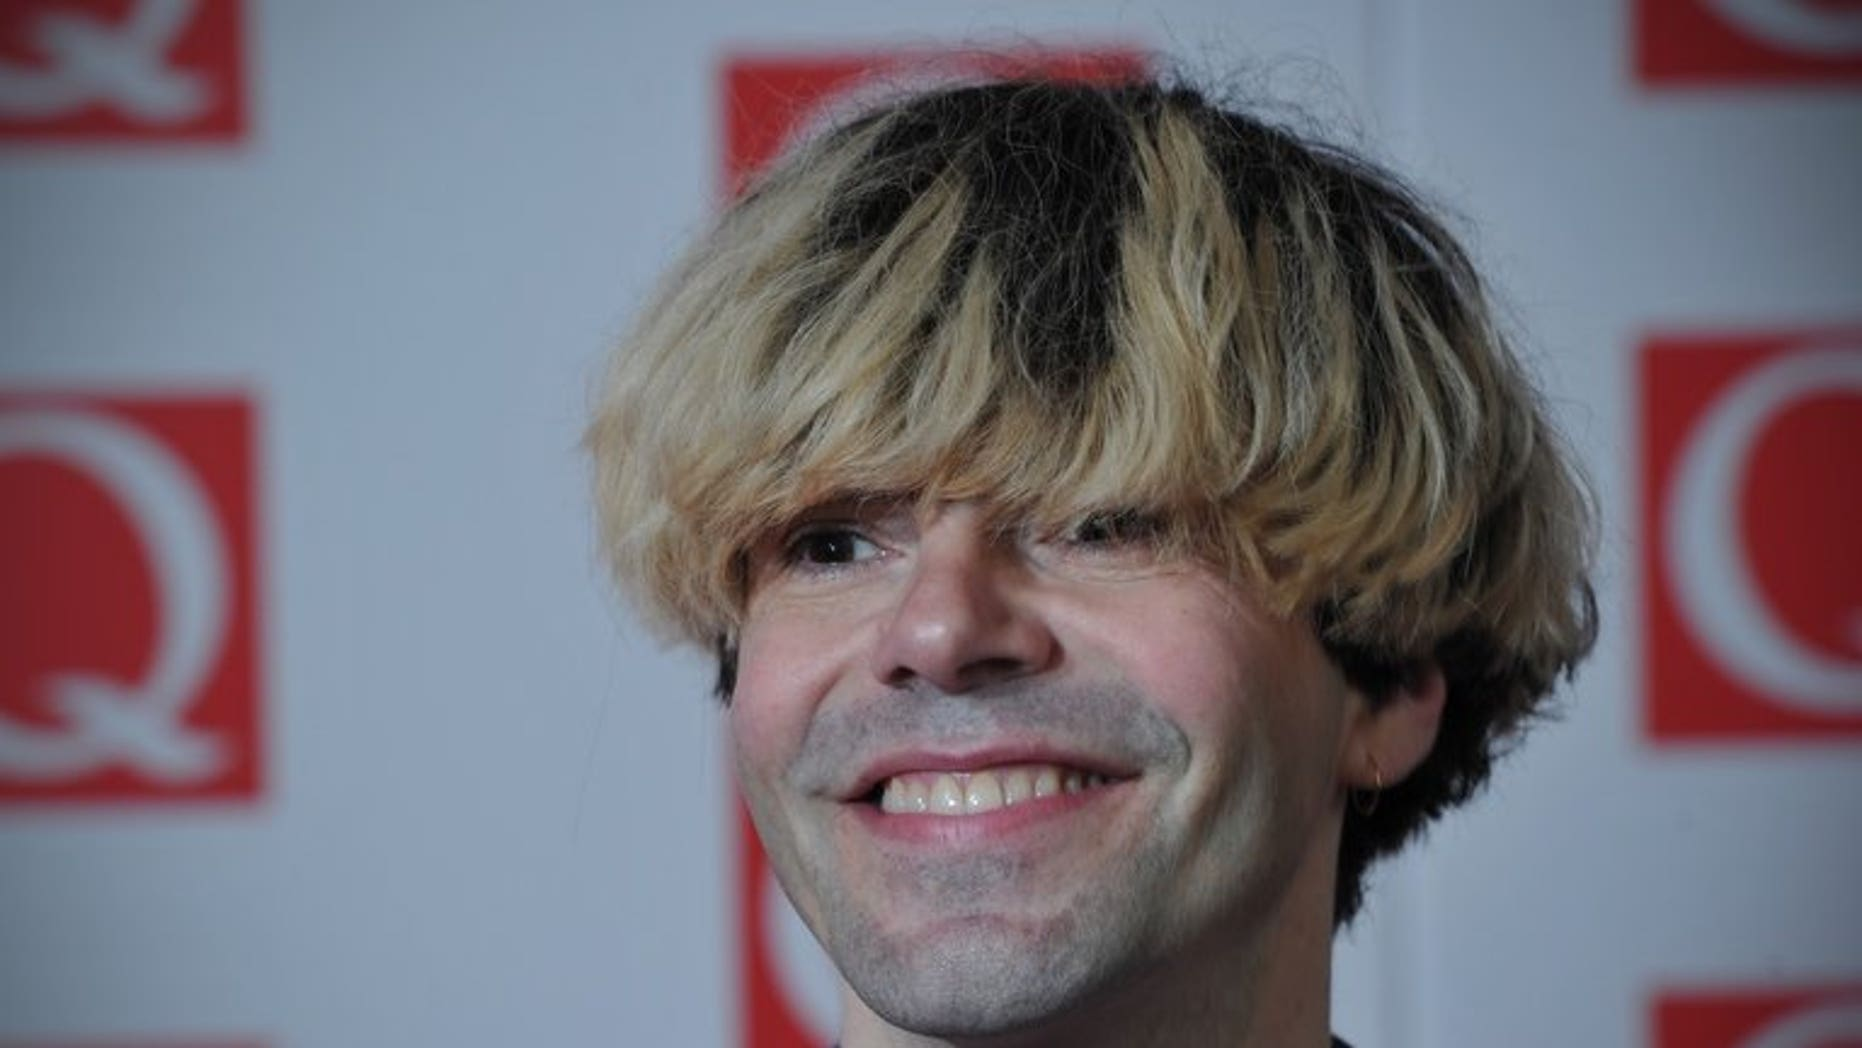 Tim Burgess, lead singer of British band The Charlatans attends the Q Awards in central London on October 22, 2012. Tributes poured in for Charlatans drummer Jon Brookes who passed away after battling brain cancer for three years.